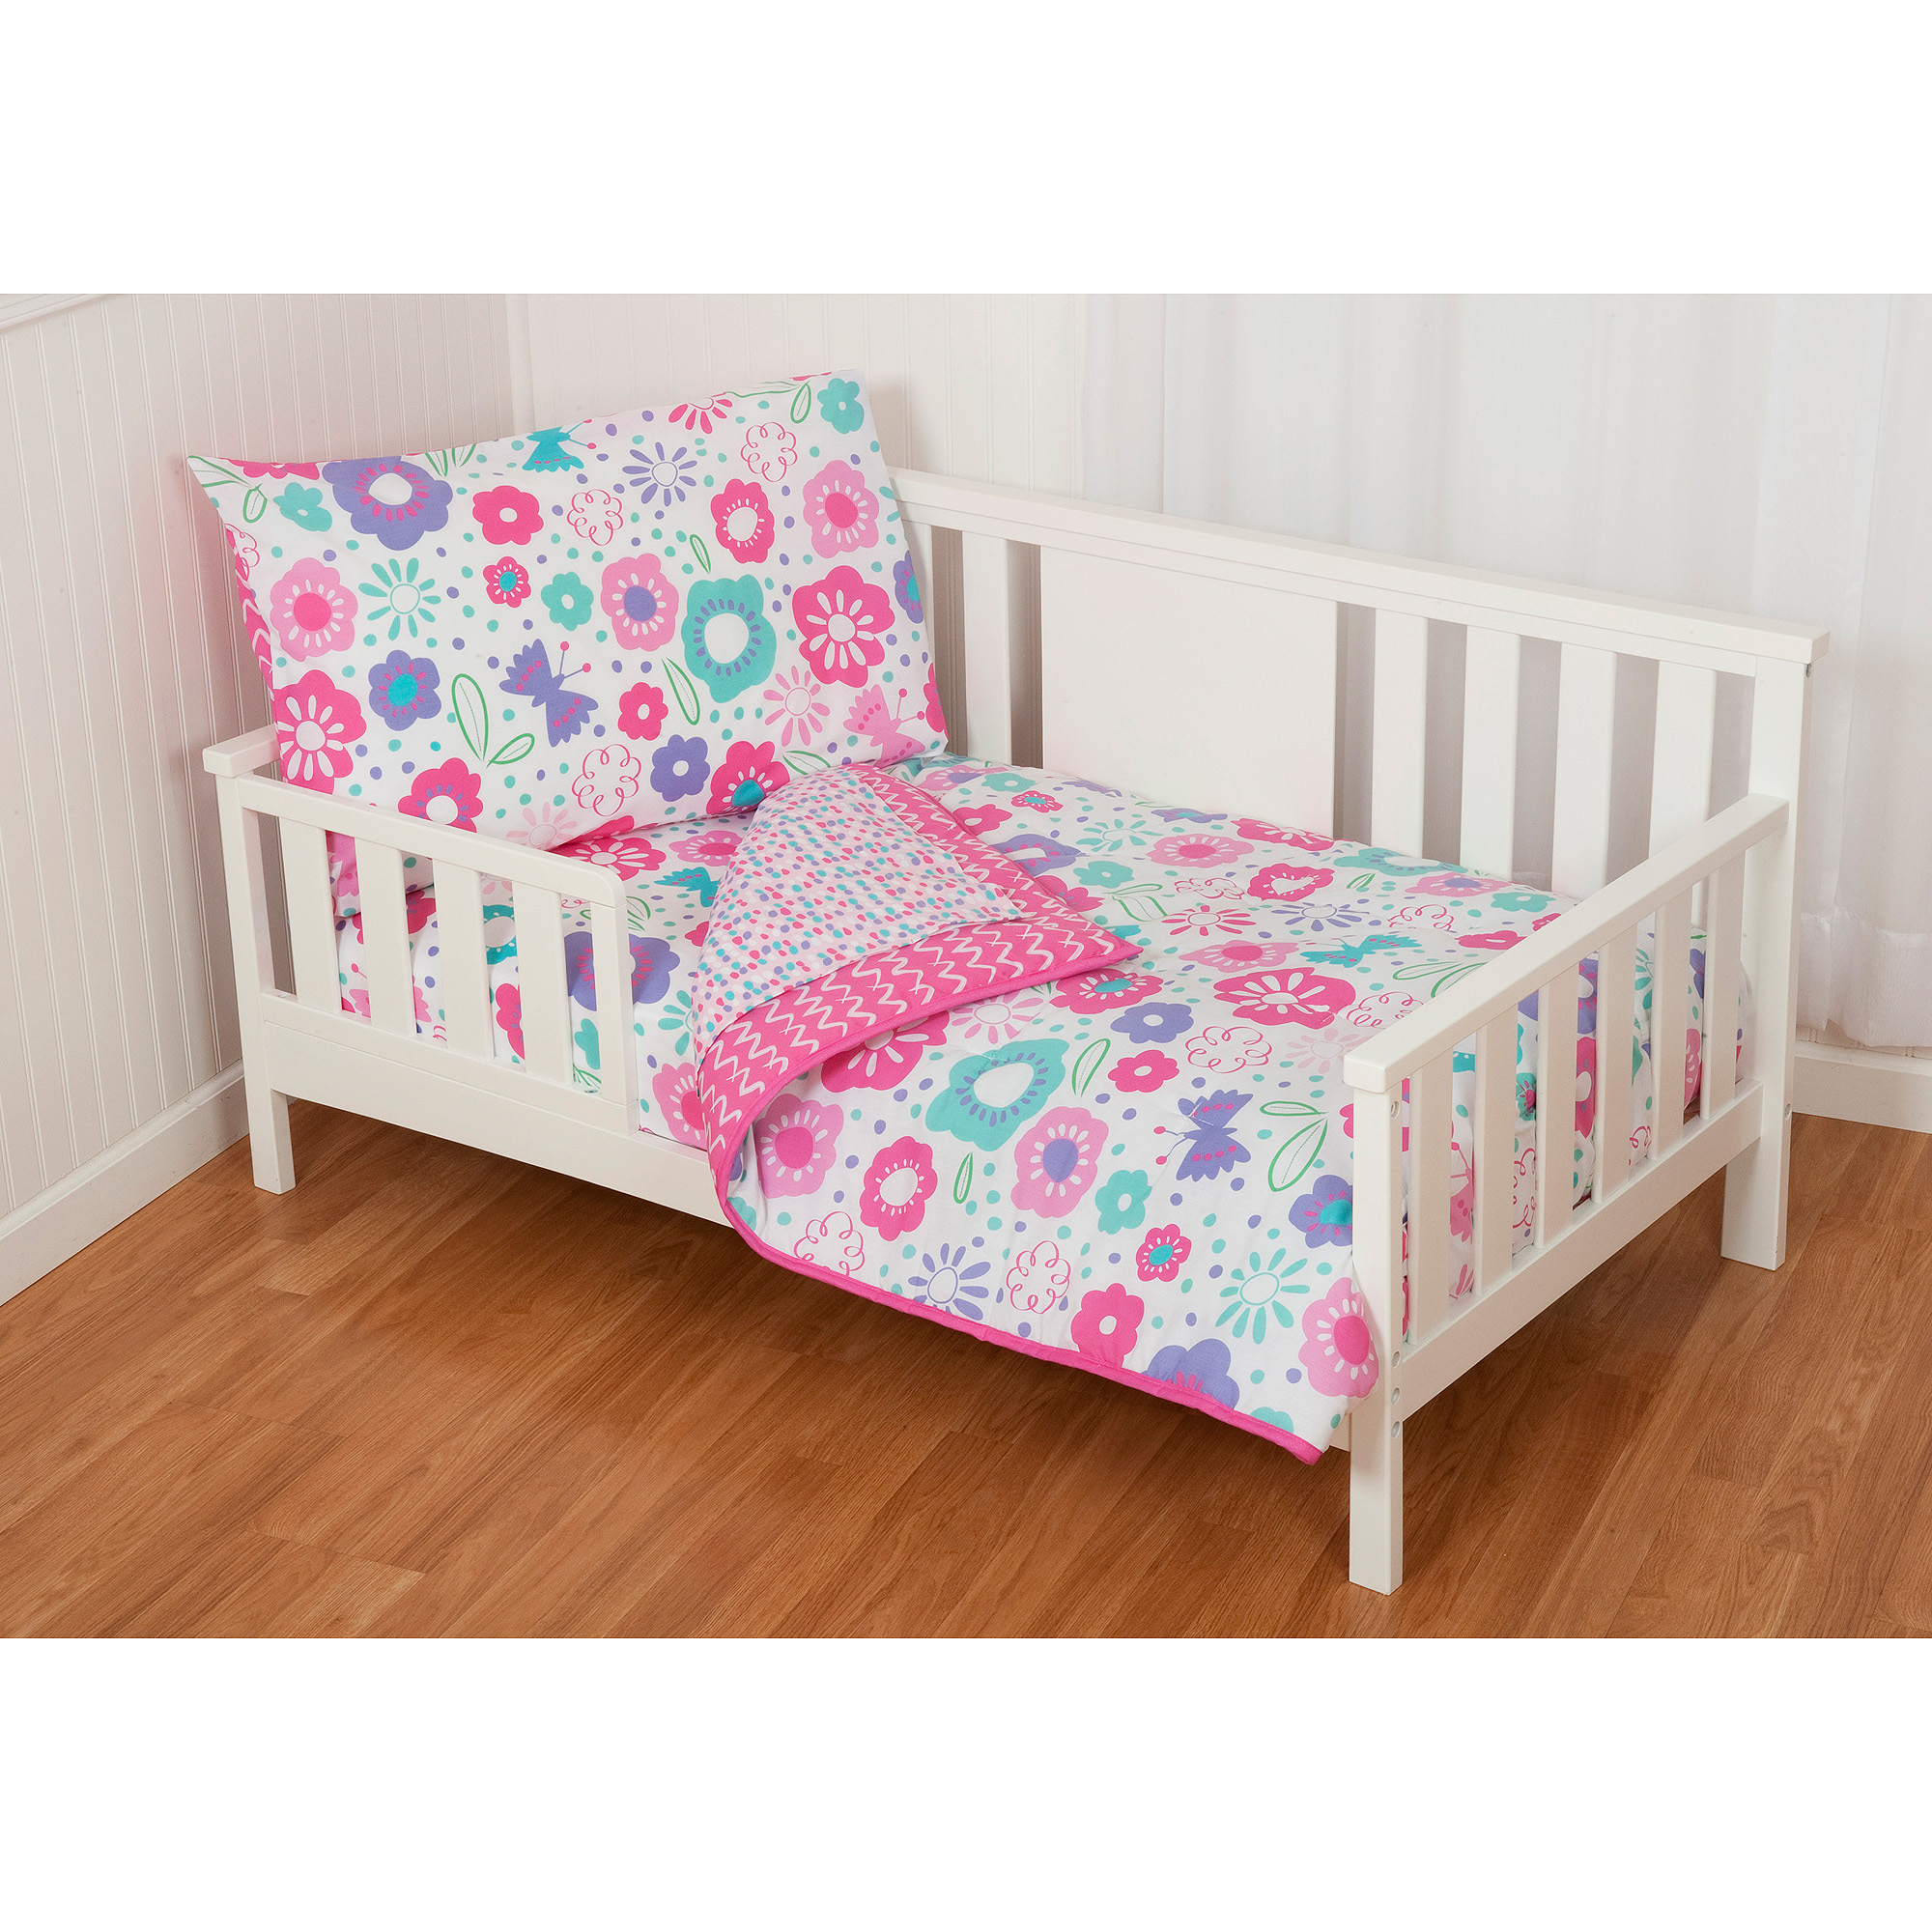 Sumersault GiGi Floral 4-Piece Toddler Bedding Set